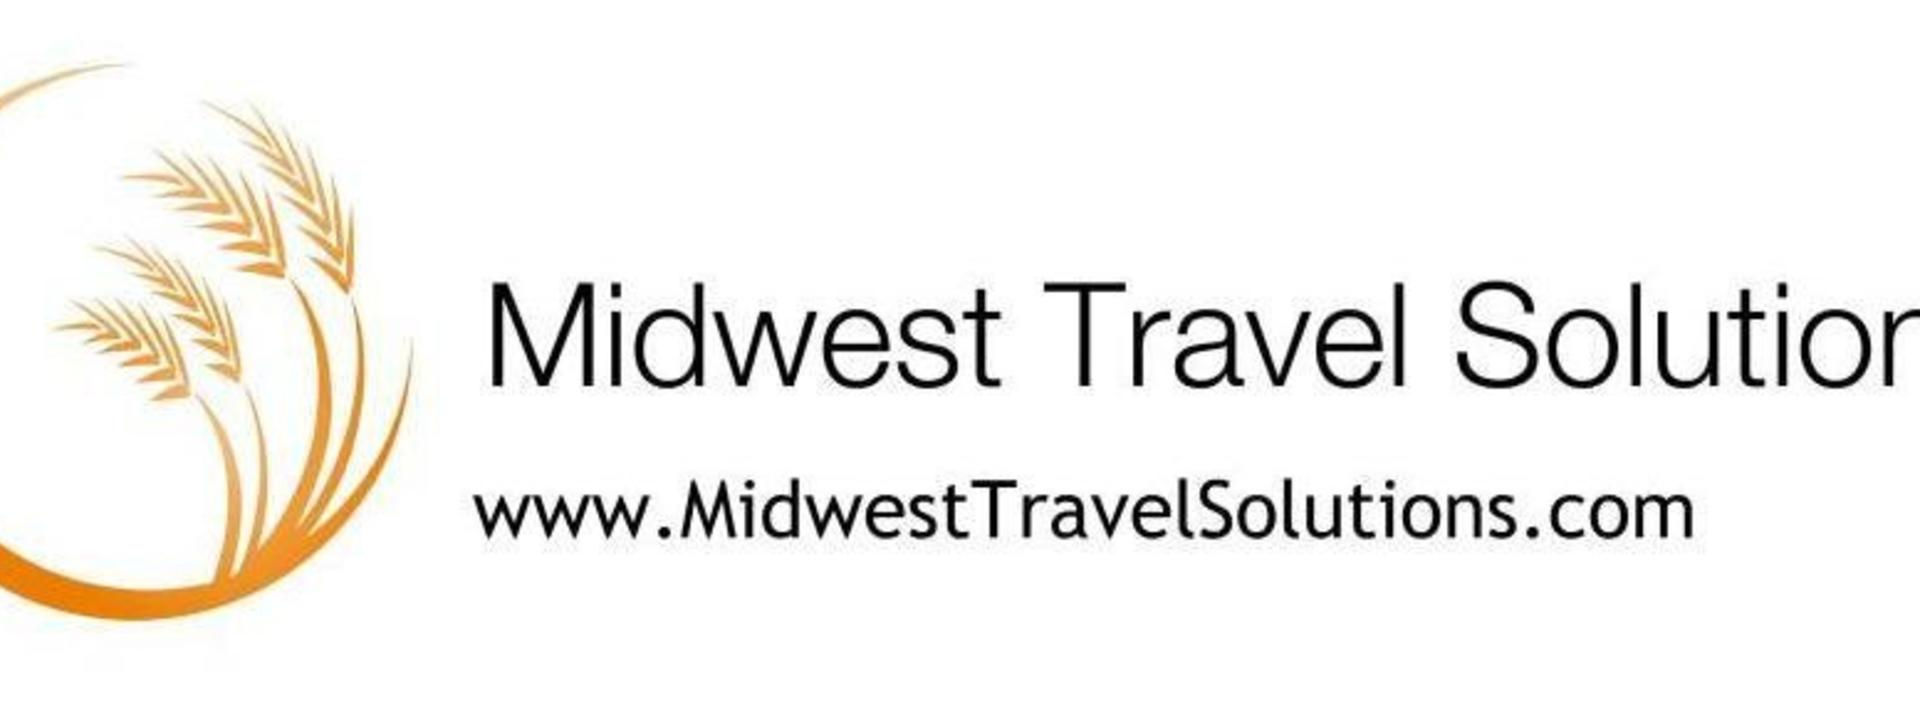 Logo: Midwest Travel Solutions